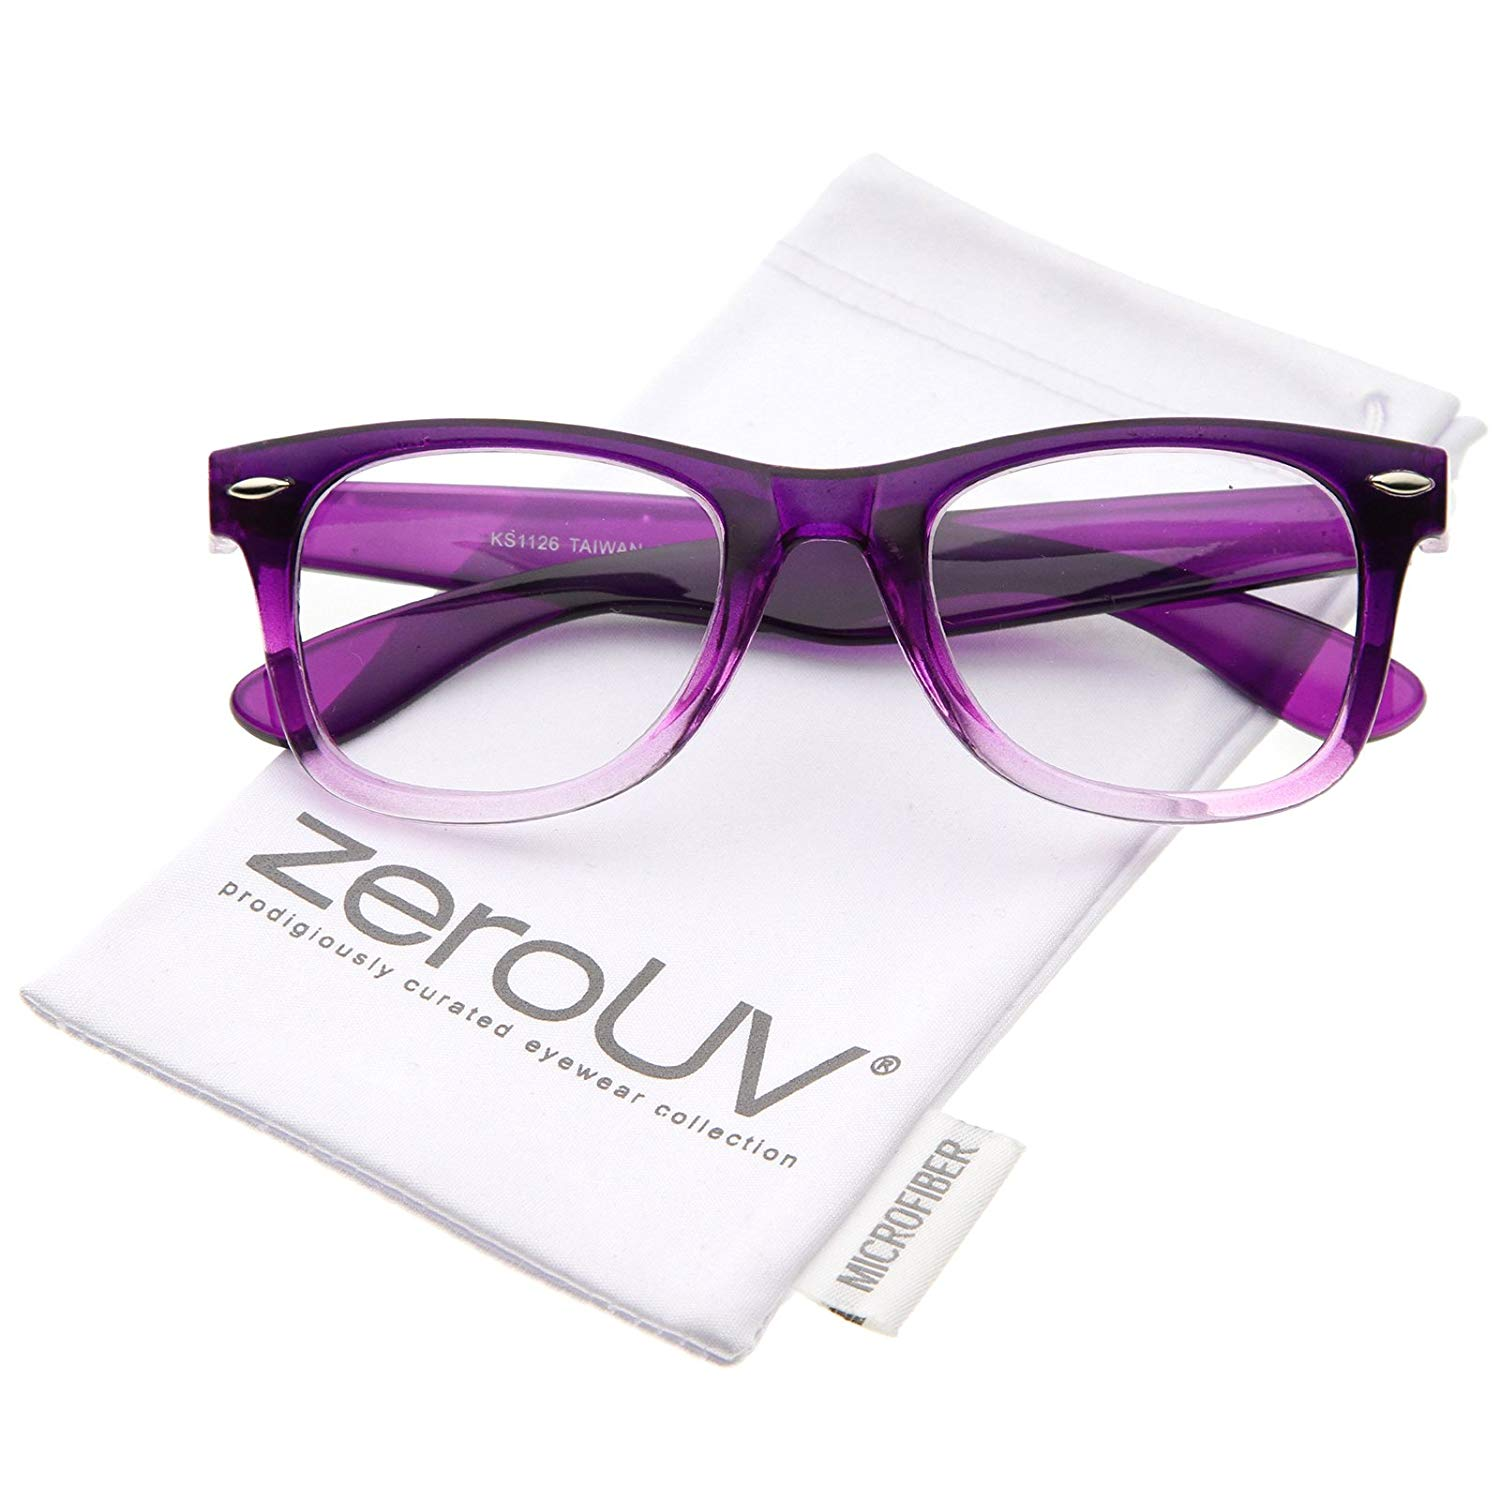 9e7faadc986 Get Quotations · zeroUV - Classic Thick Square Clear Lens Horn Rimmed  Eyeglasses 50mm